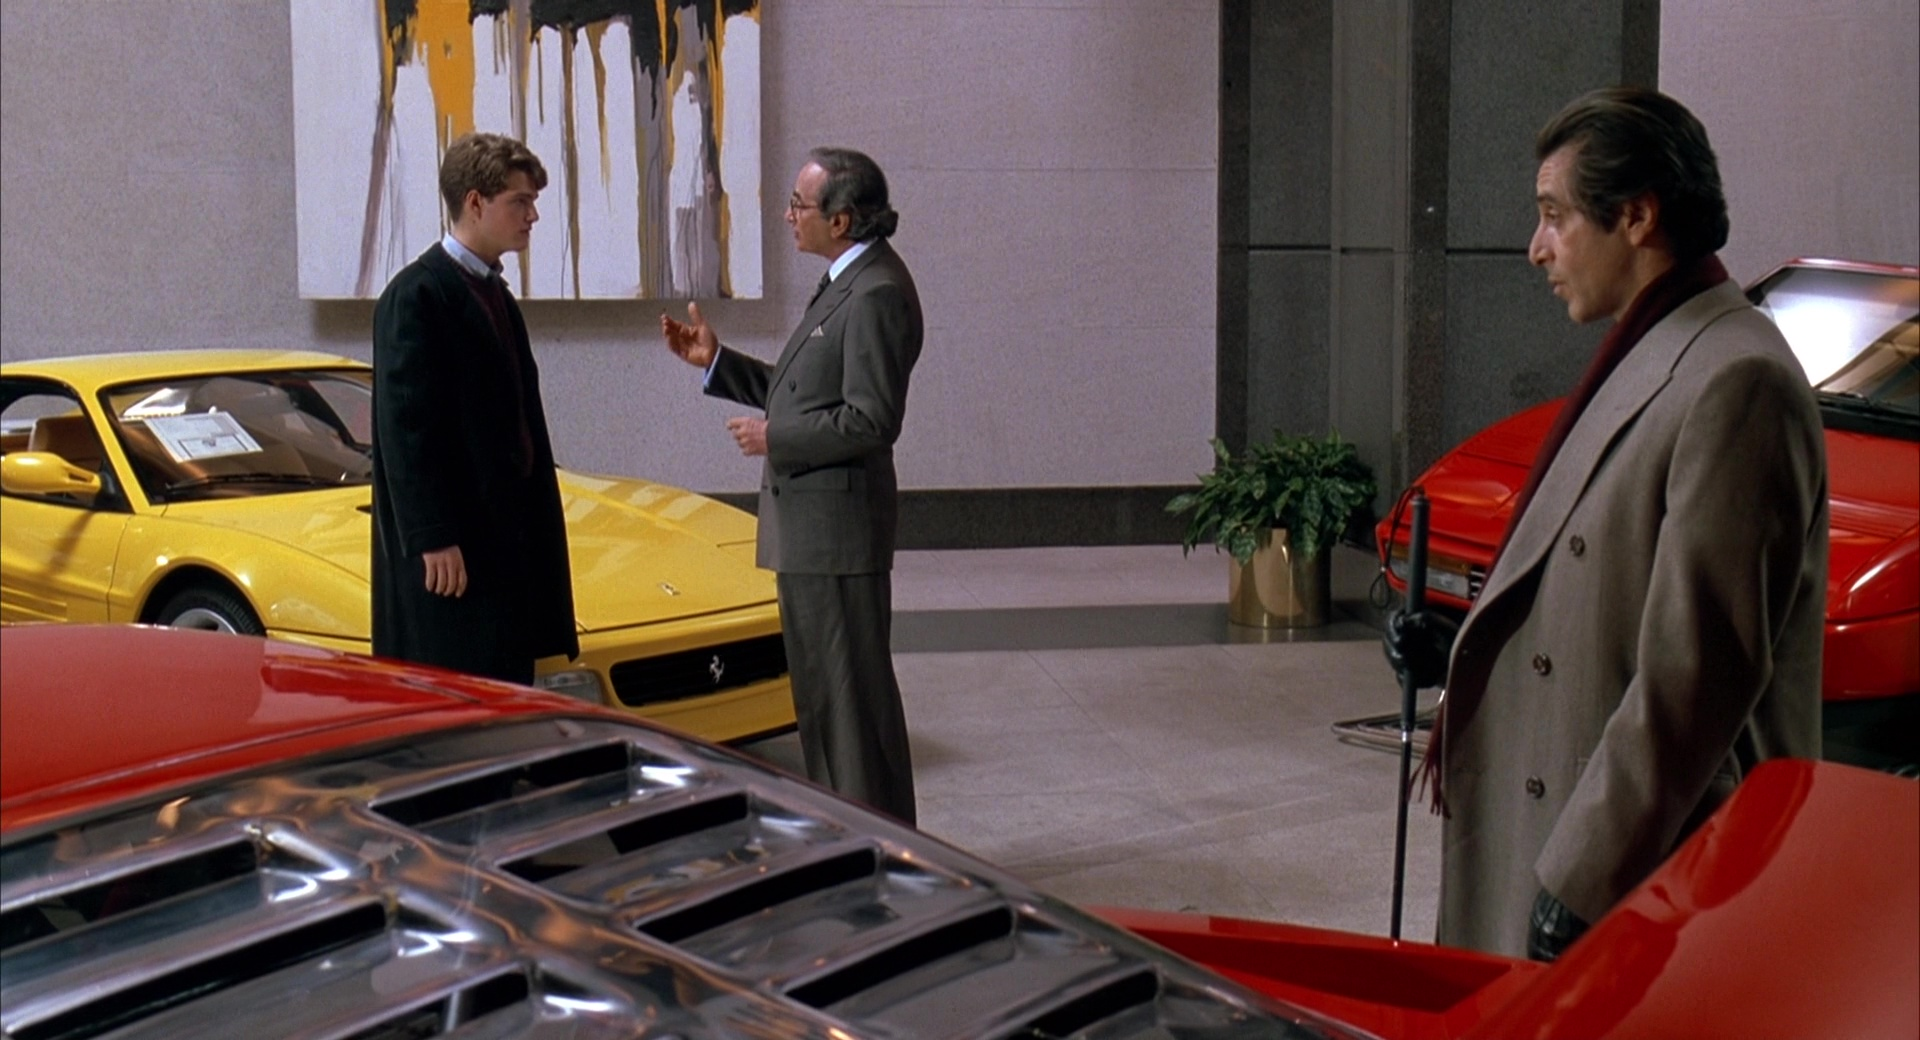 Nissan Mobile Al >> Ferrari Car Dealer (Chris O'Donnell and Al Pacino) in Scent of a Woman (1992) Movie